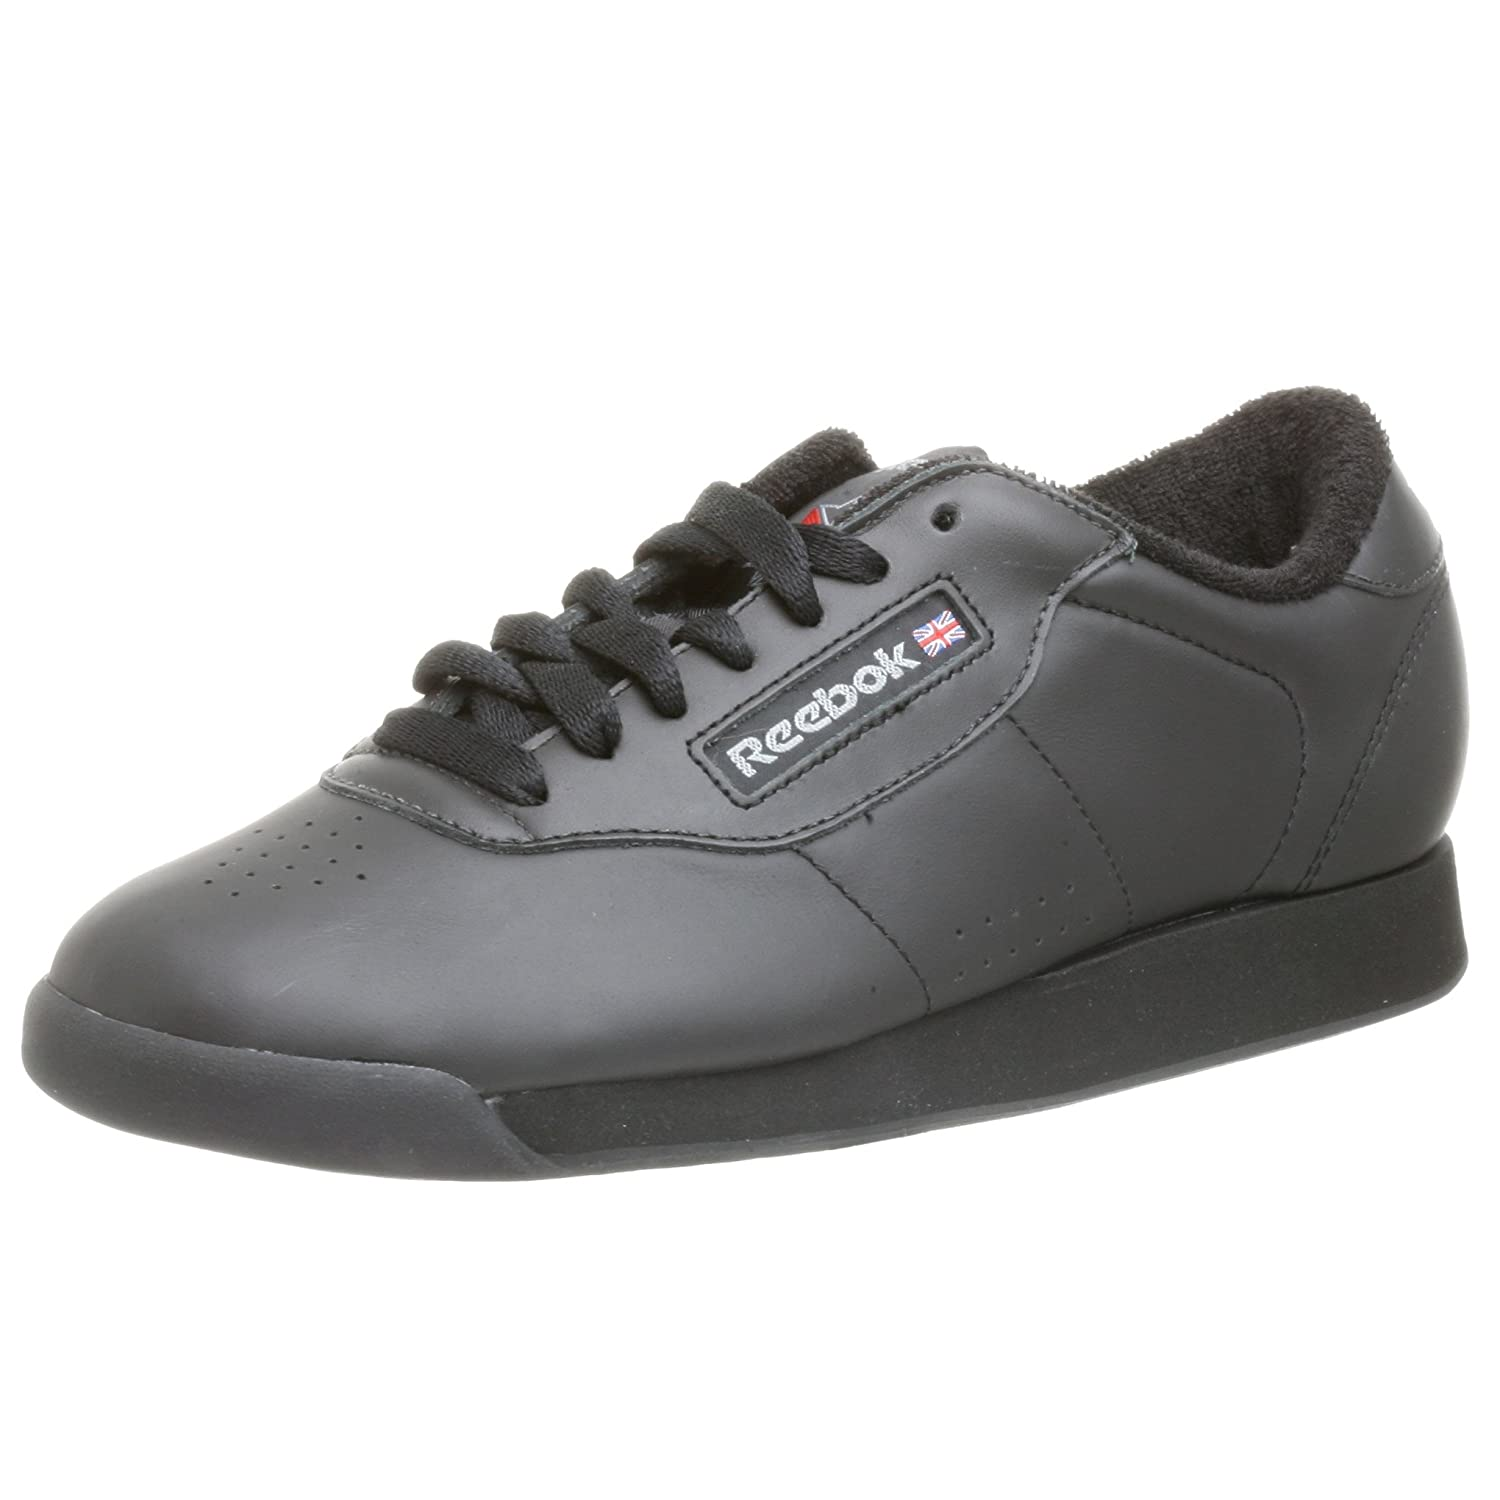 3ba801a709a0 Reebok Classics Women s Princess Fashion Sneakers  Amazon.ca  Shoes    Handbags